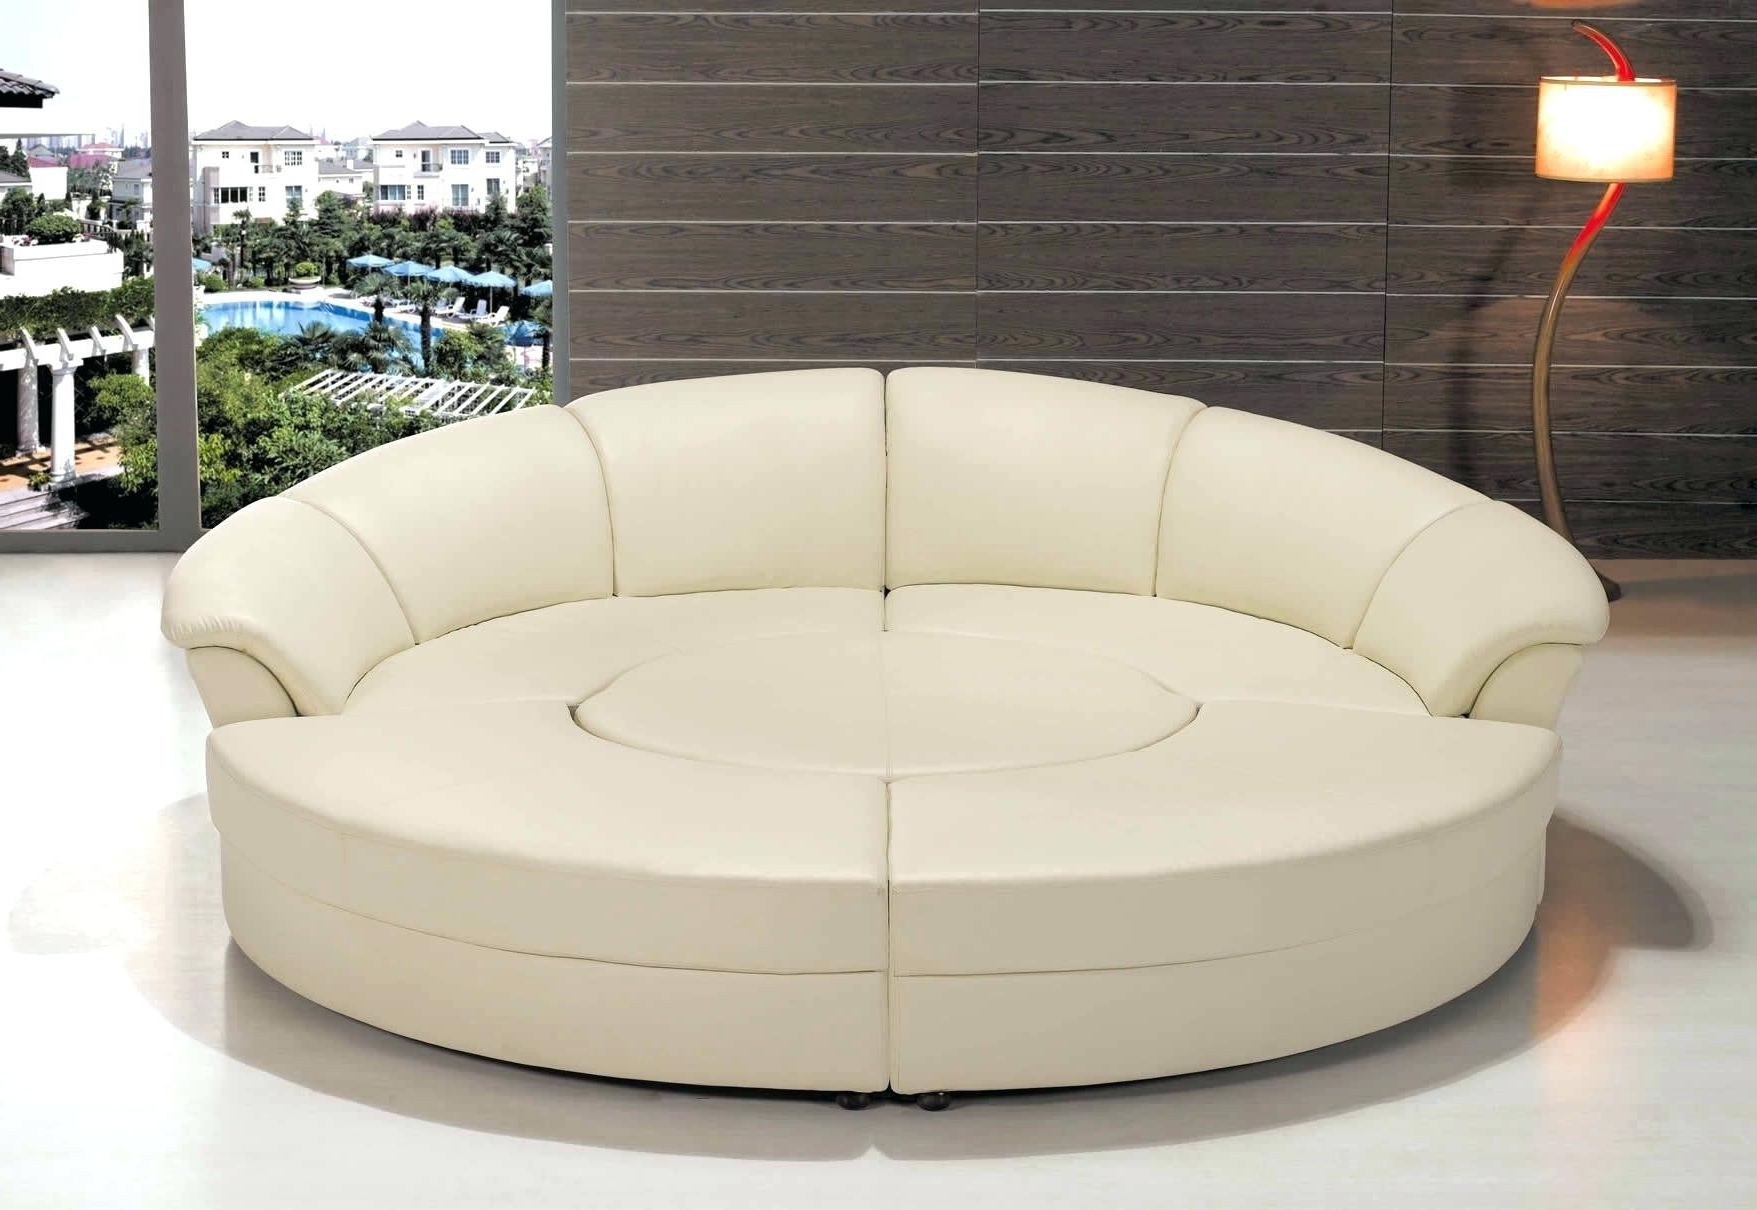 Rounded Sofas Regarding Well Known Furniture : Round Sectional Sofa Covers New Round Sofa Covers (View 11 of 15)